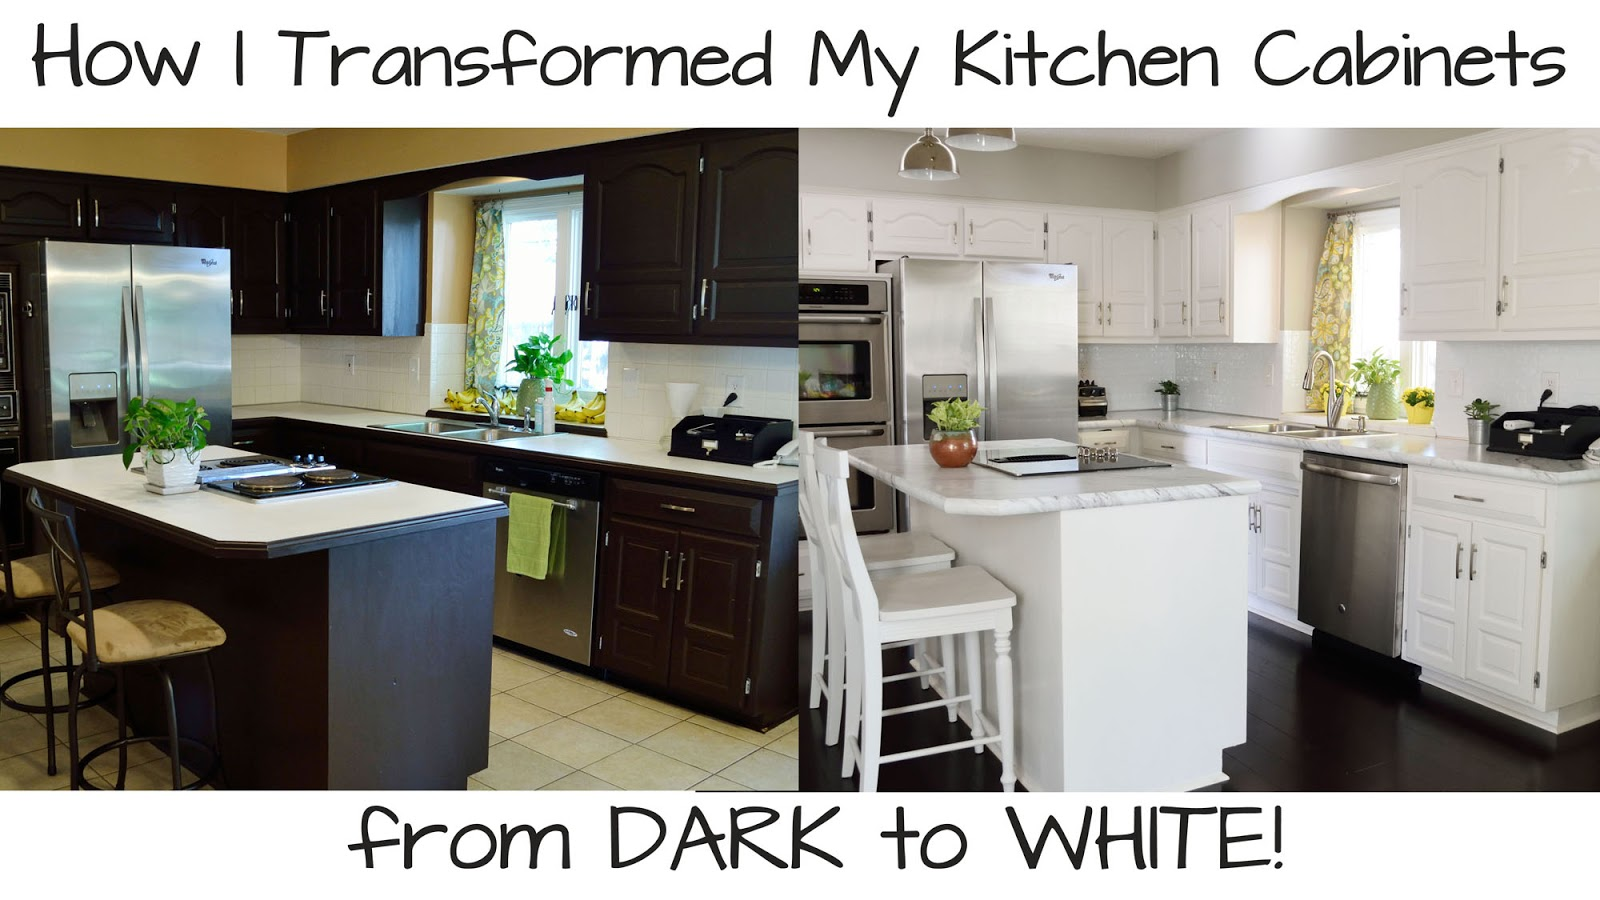 Paint My Kitchen Cabinets Ashley S Green Life How I Transformed My Kitchen Cabinets From